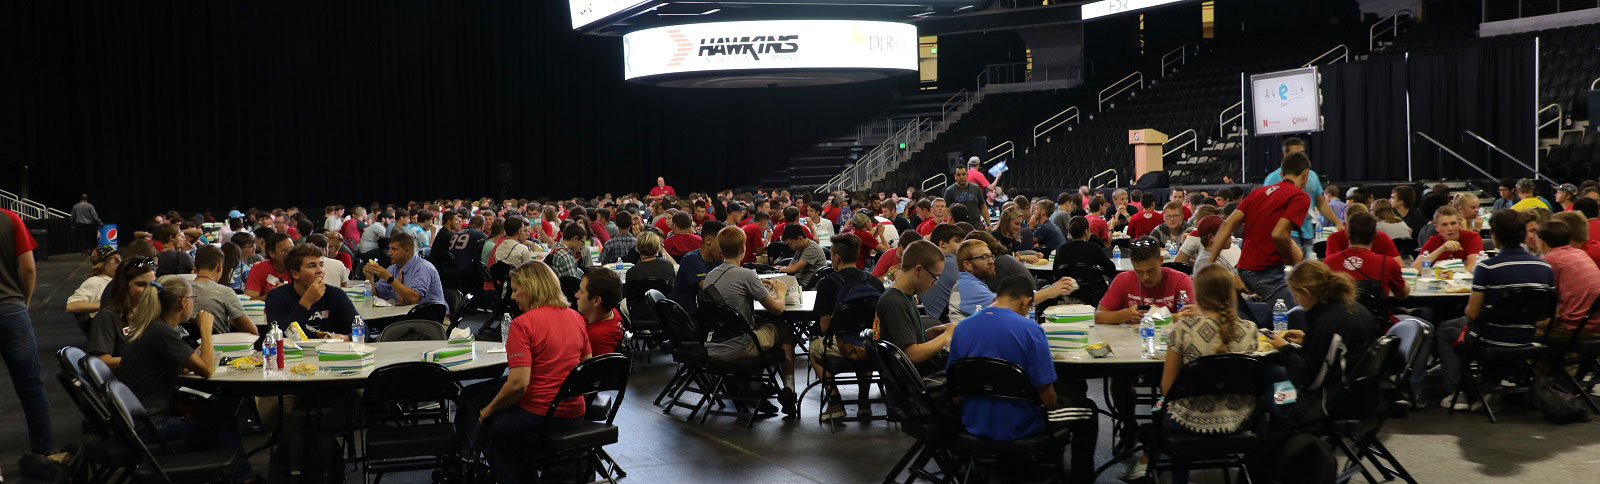 The NUBE lunch program was held at Baxter Arena in Omaha in 2017, pictured here